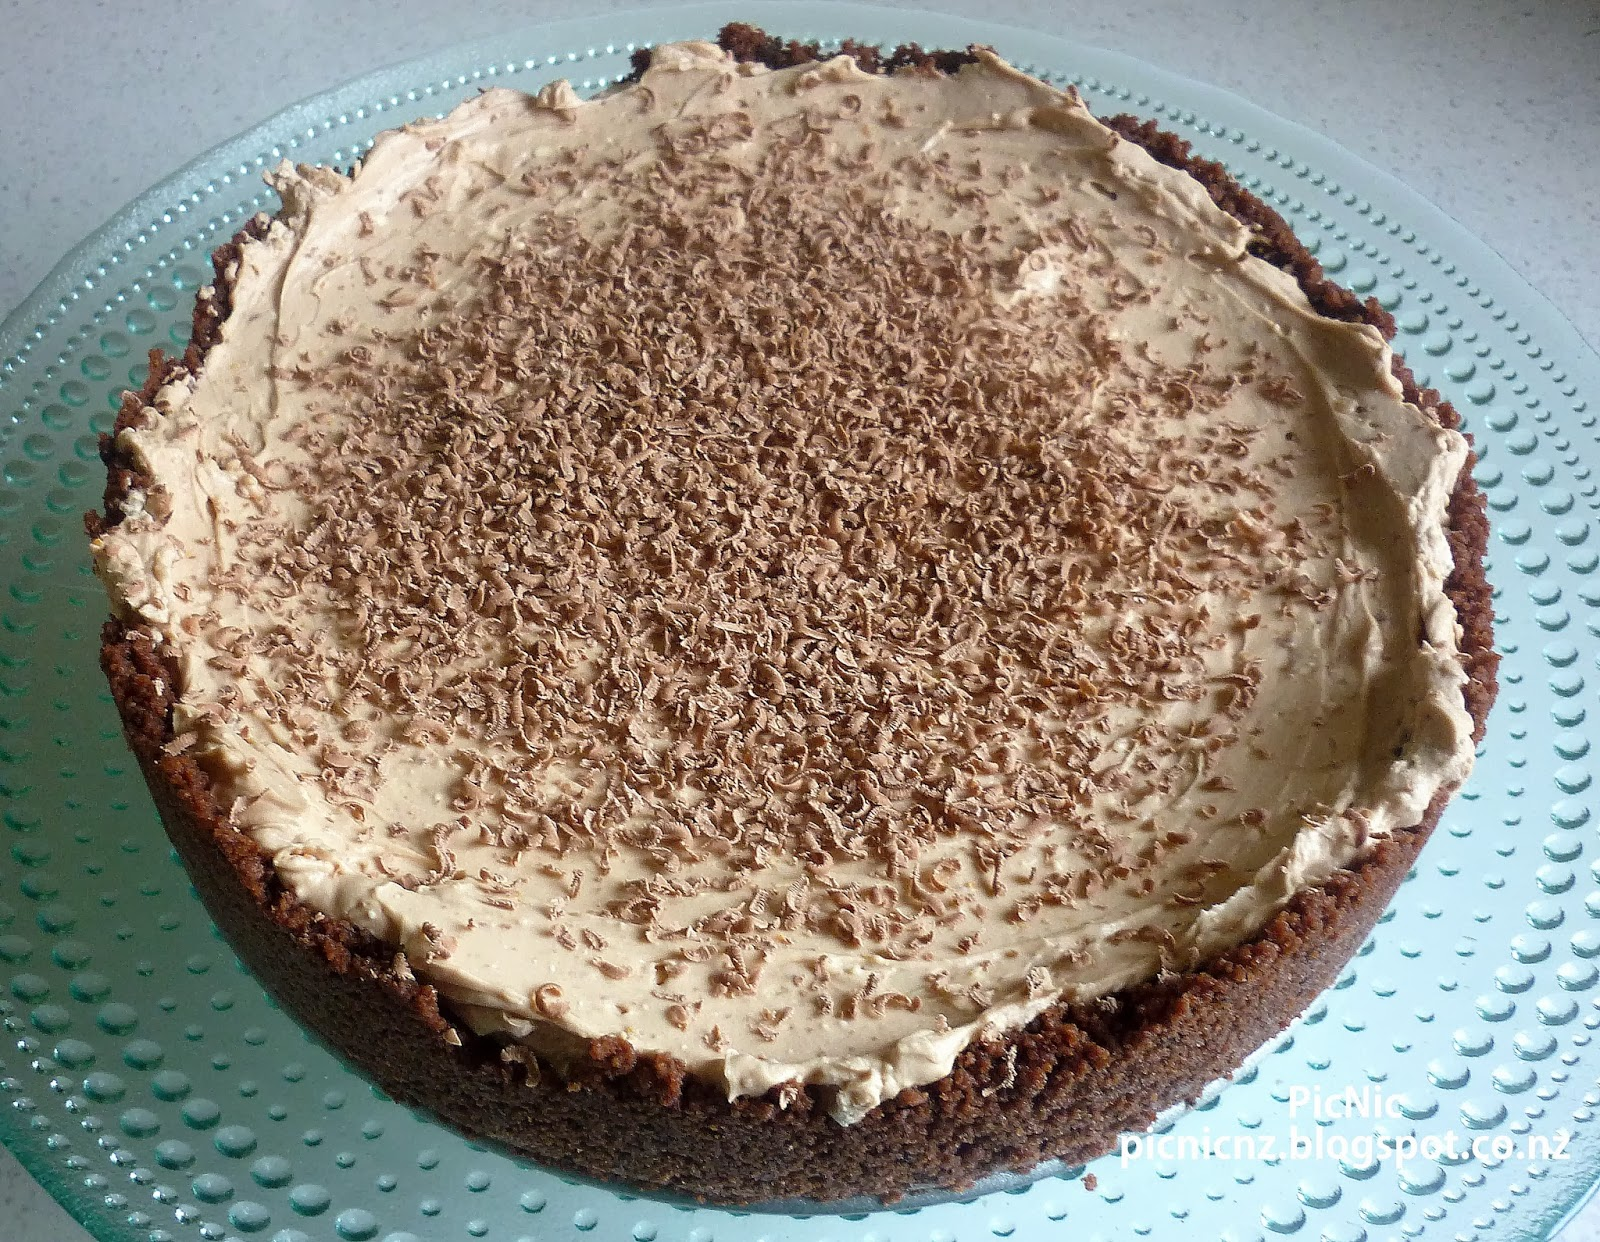 PicNic: Chocolate Orange Cheesecake